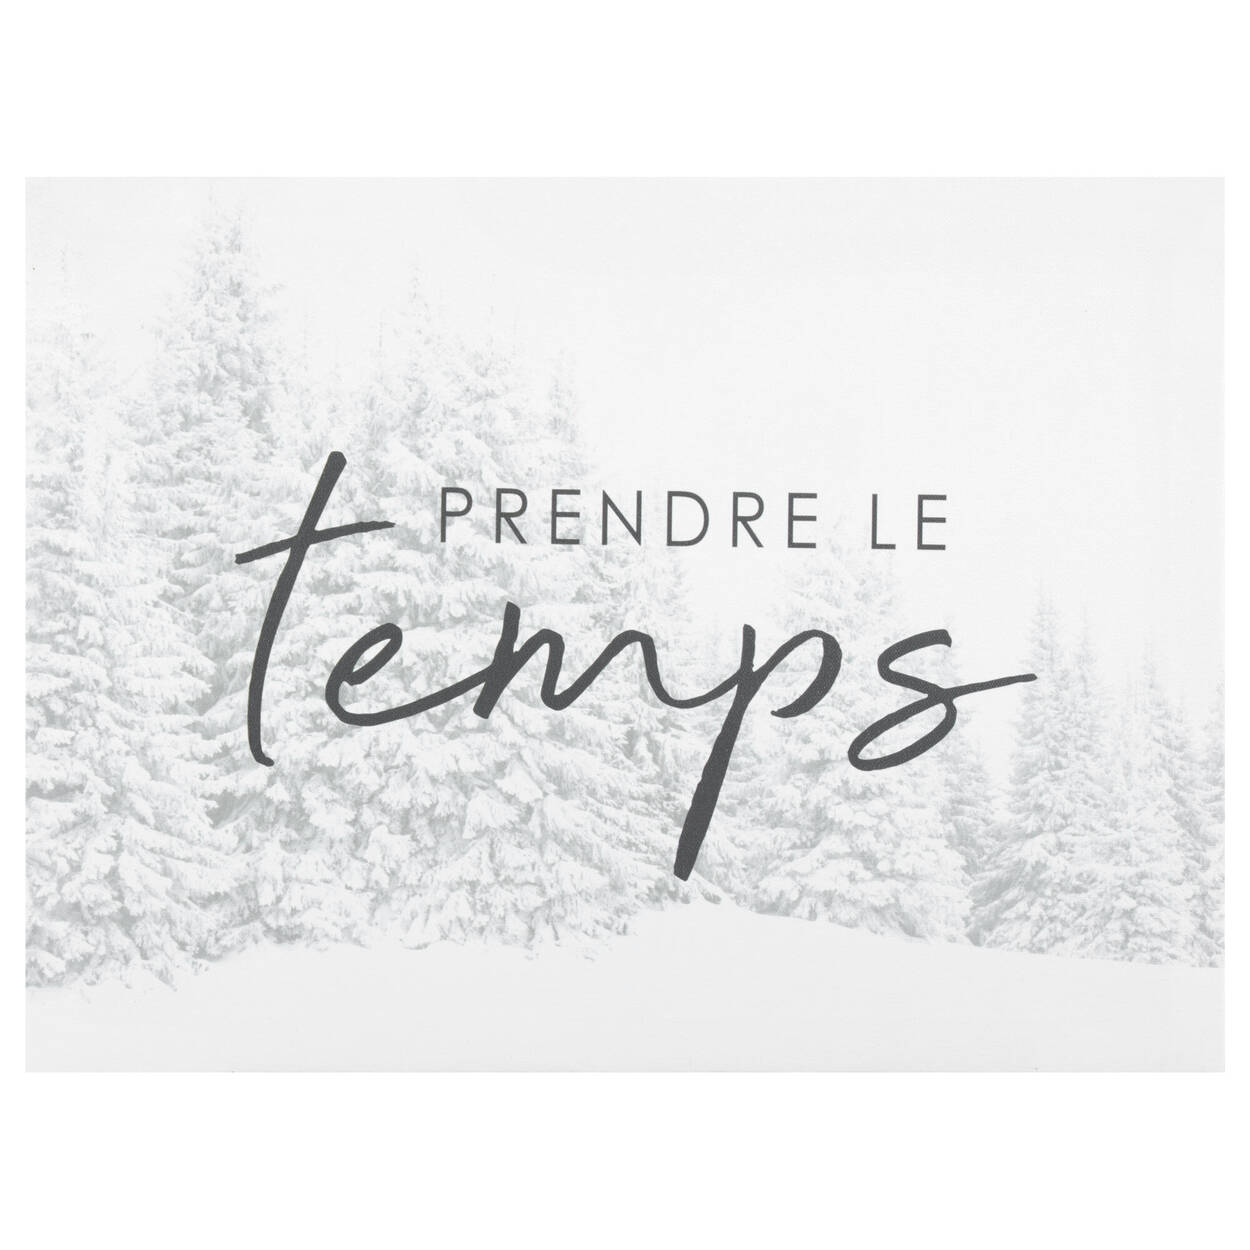 Le Temps Printed Canvas